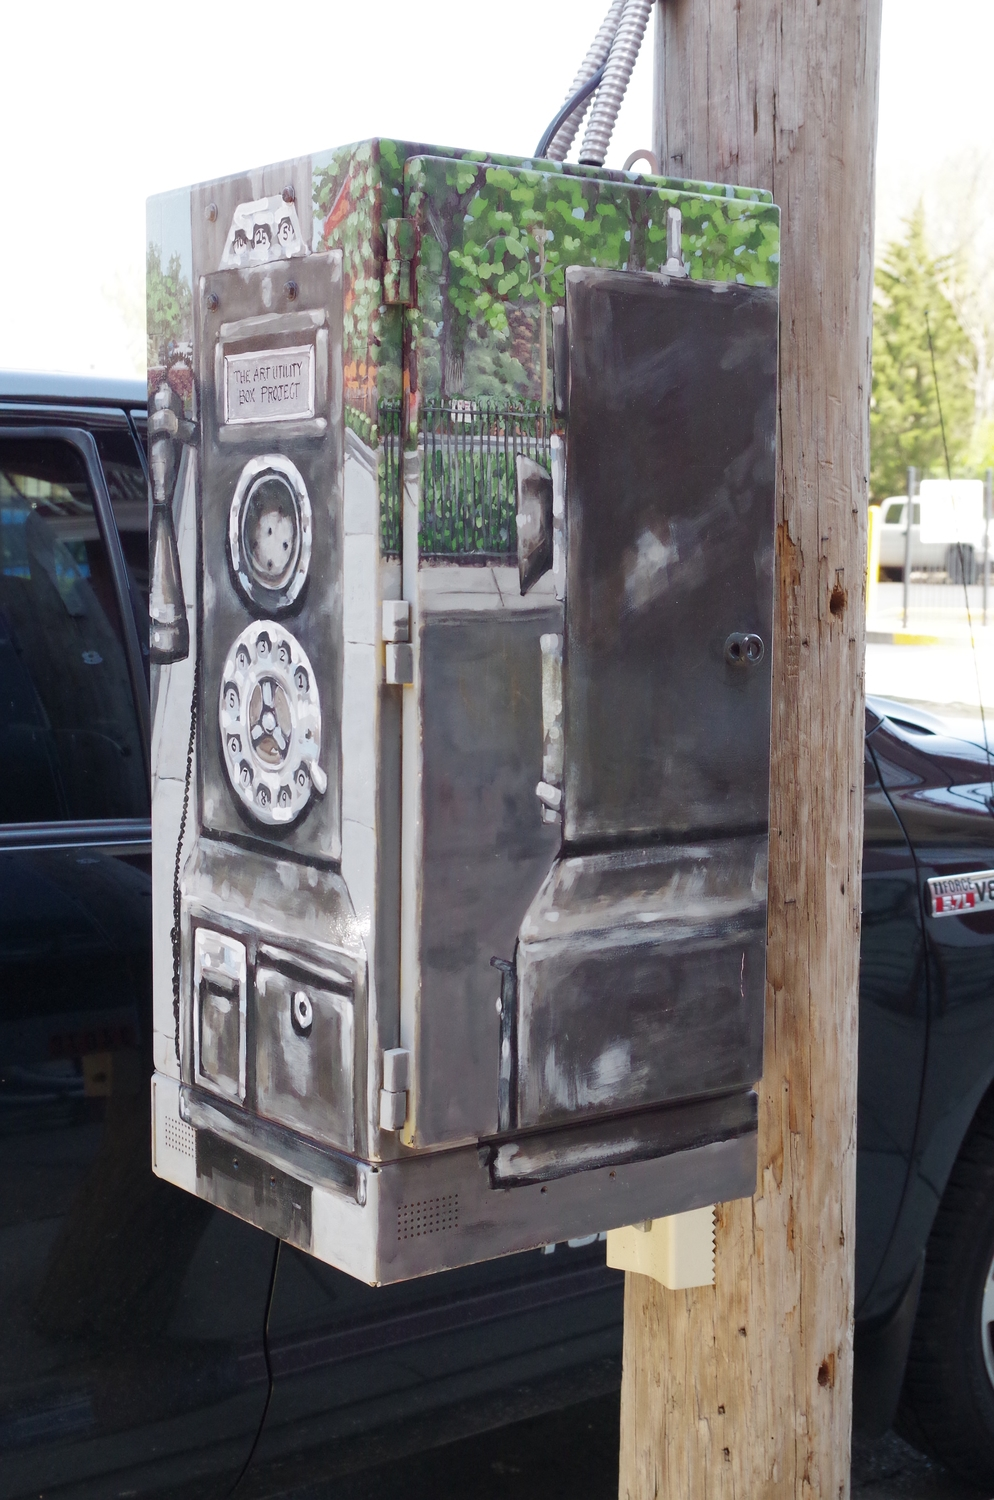 Cincinnati Bell utility box painting in Clifton, Cincinnati, Ohio, 2014